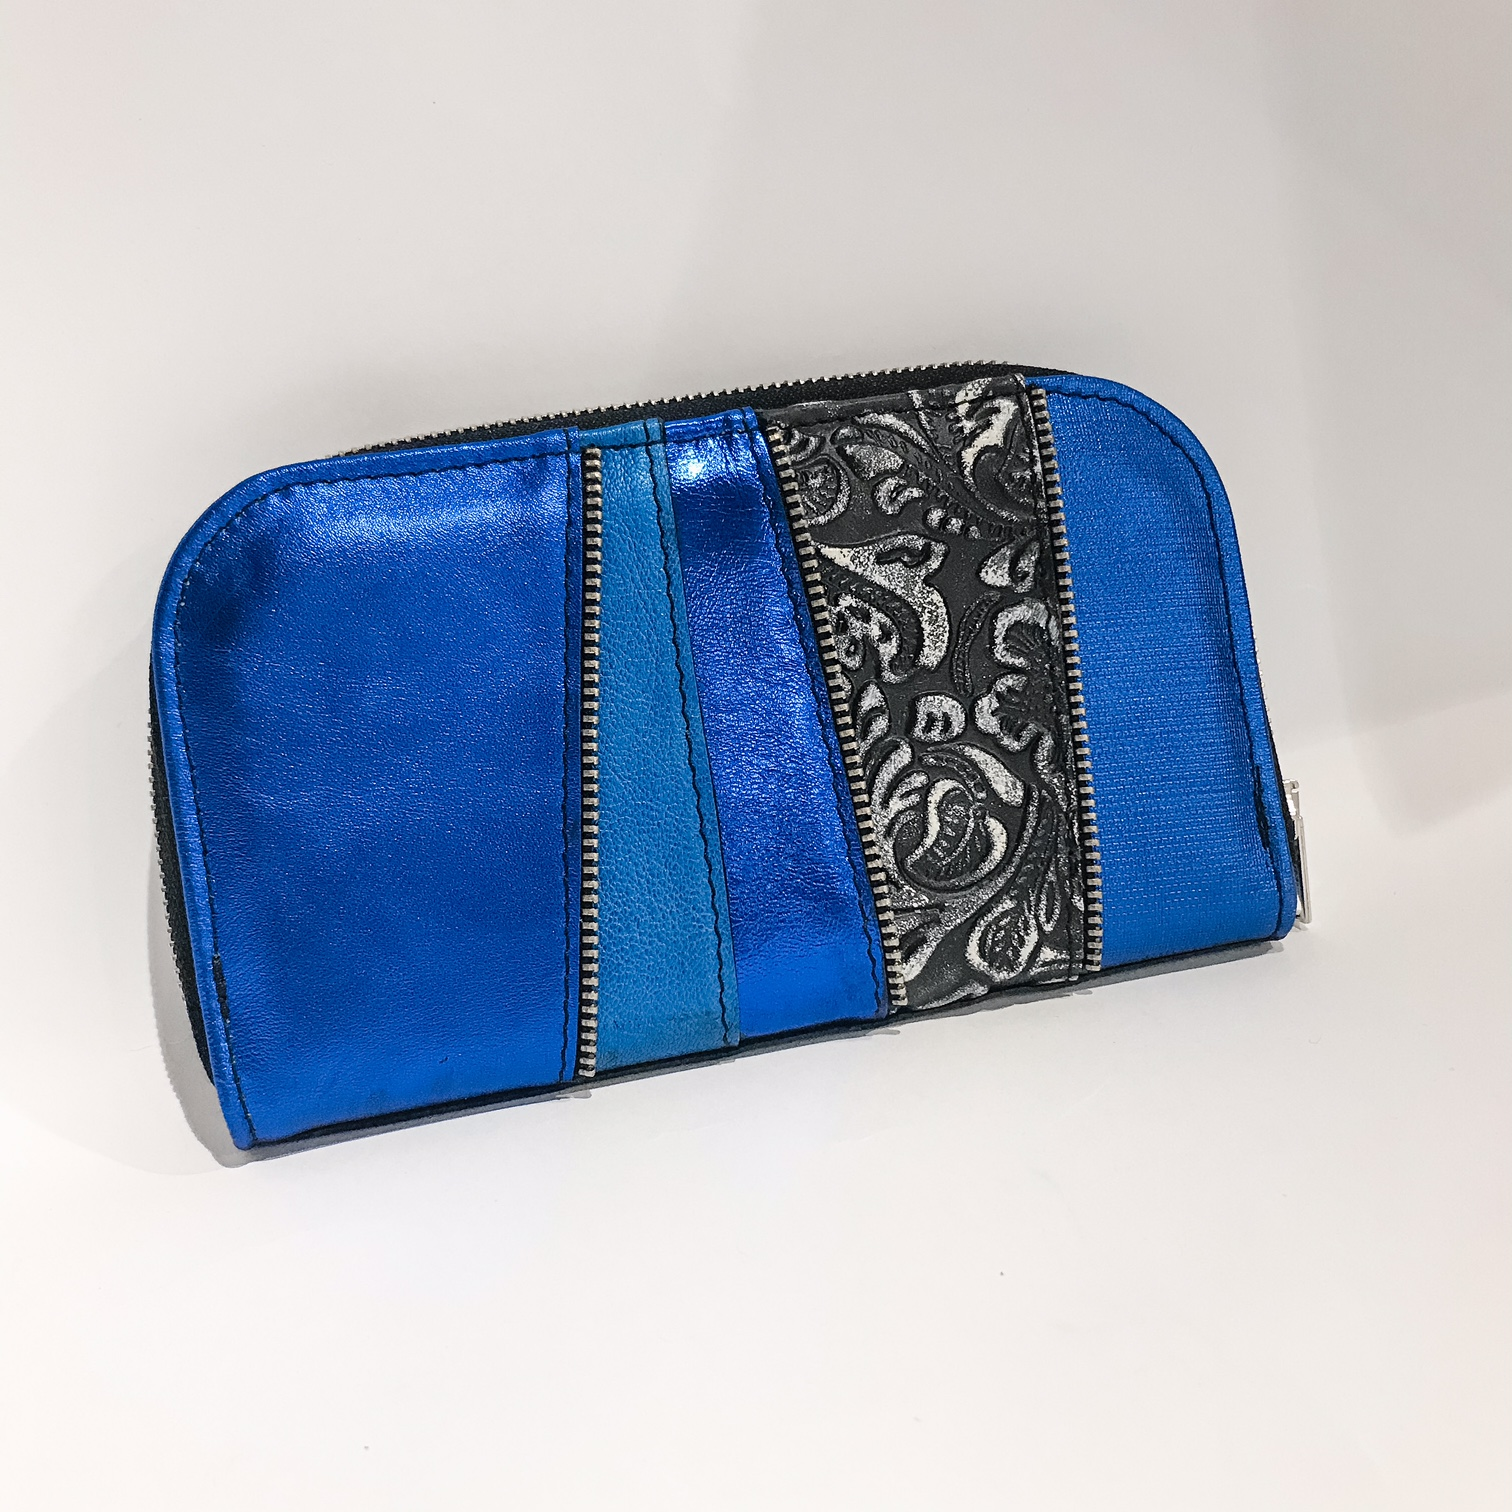 Adriatic Blue Chic Maxi Wallet